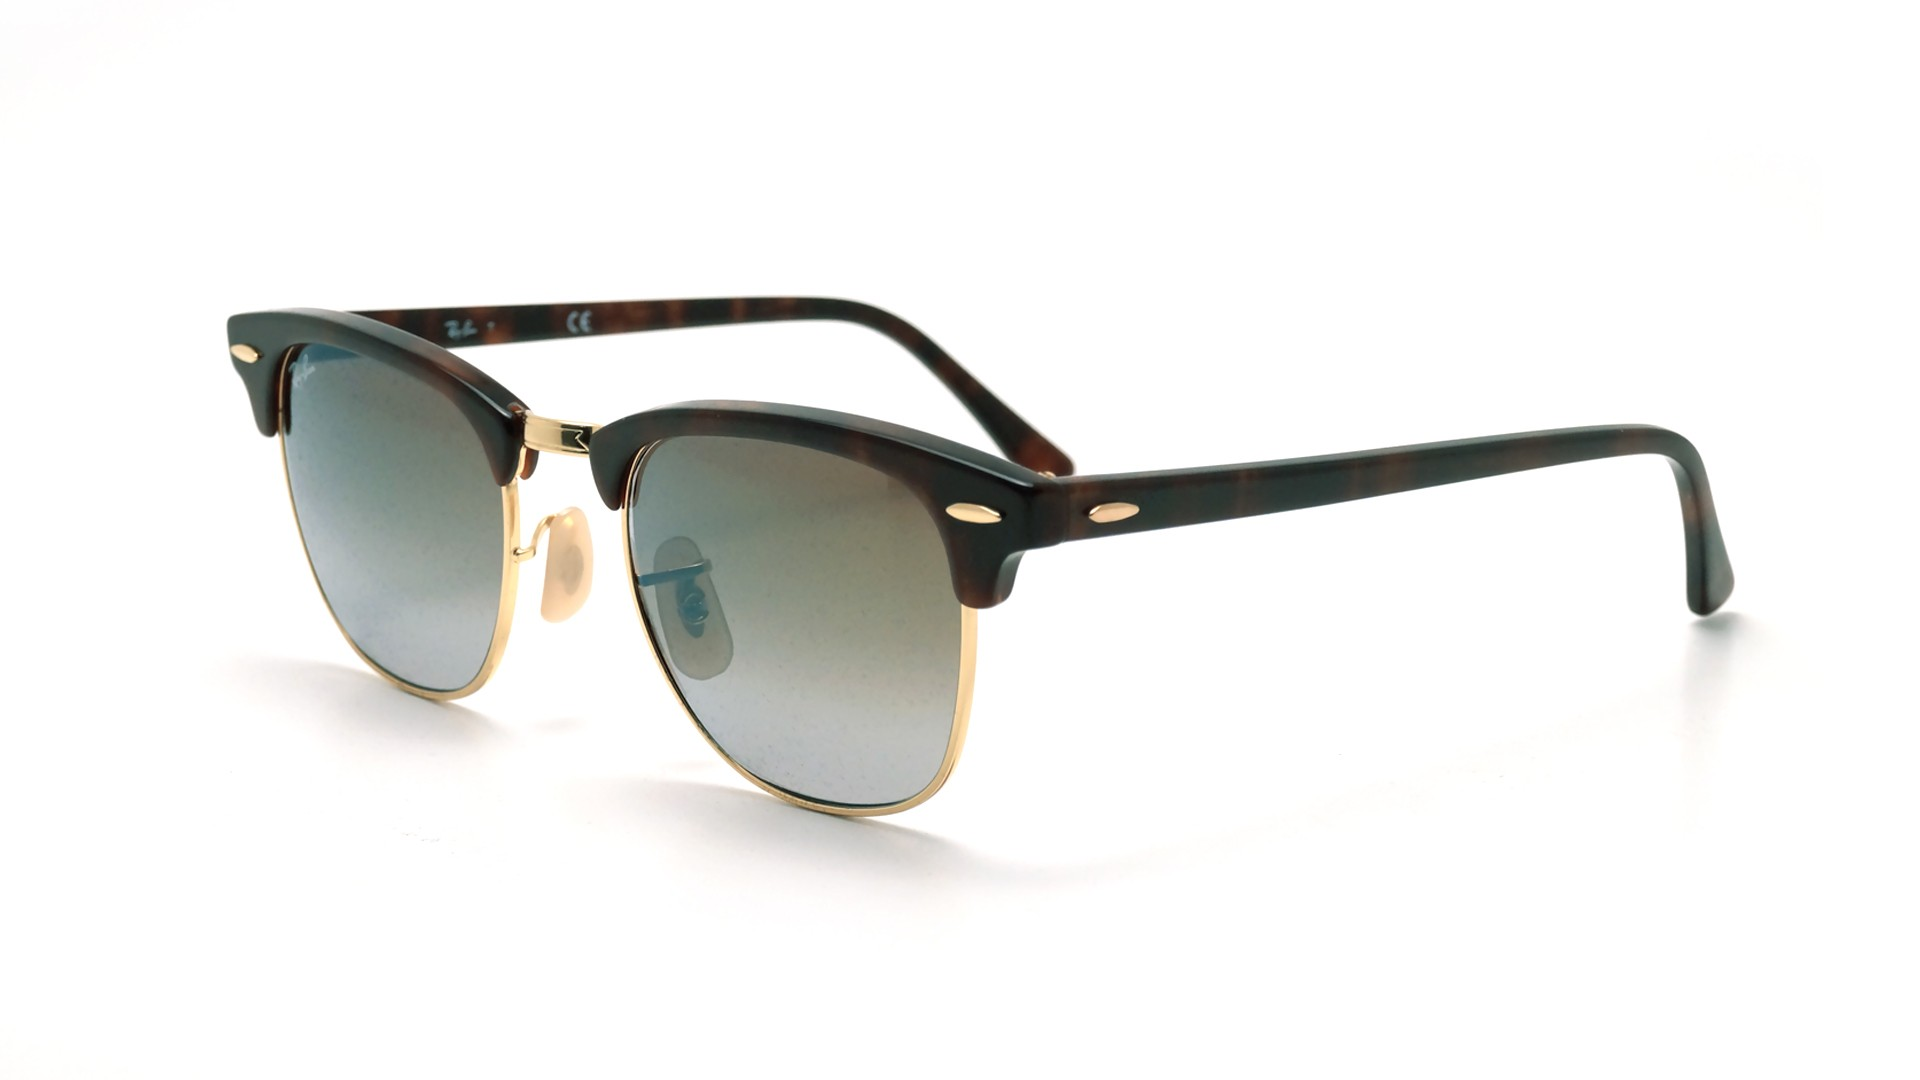 16b42dafc359c5 Ray-Ban Clubmaster Écaille RB3016 990/9J 49-21 | Prix 109,90 € |  Visiofactory